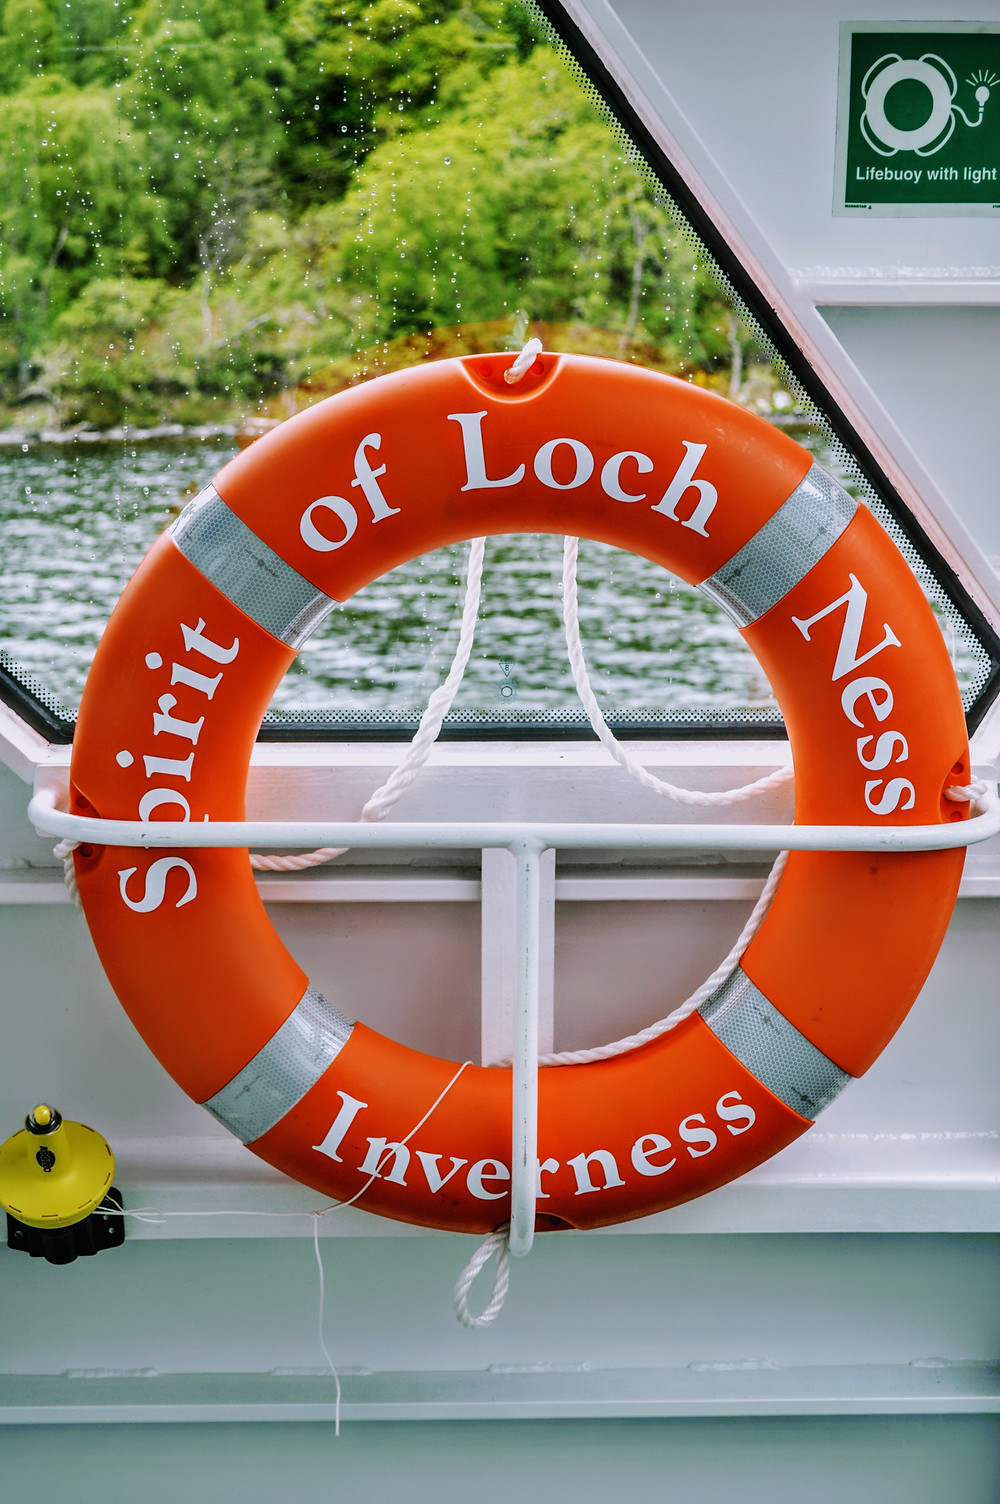 Cruise Loch Ness tours, Fort Augustus Scotland, Loch ness boat tours, searching for Nessie, Spirit of Loch Ness